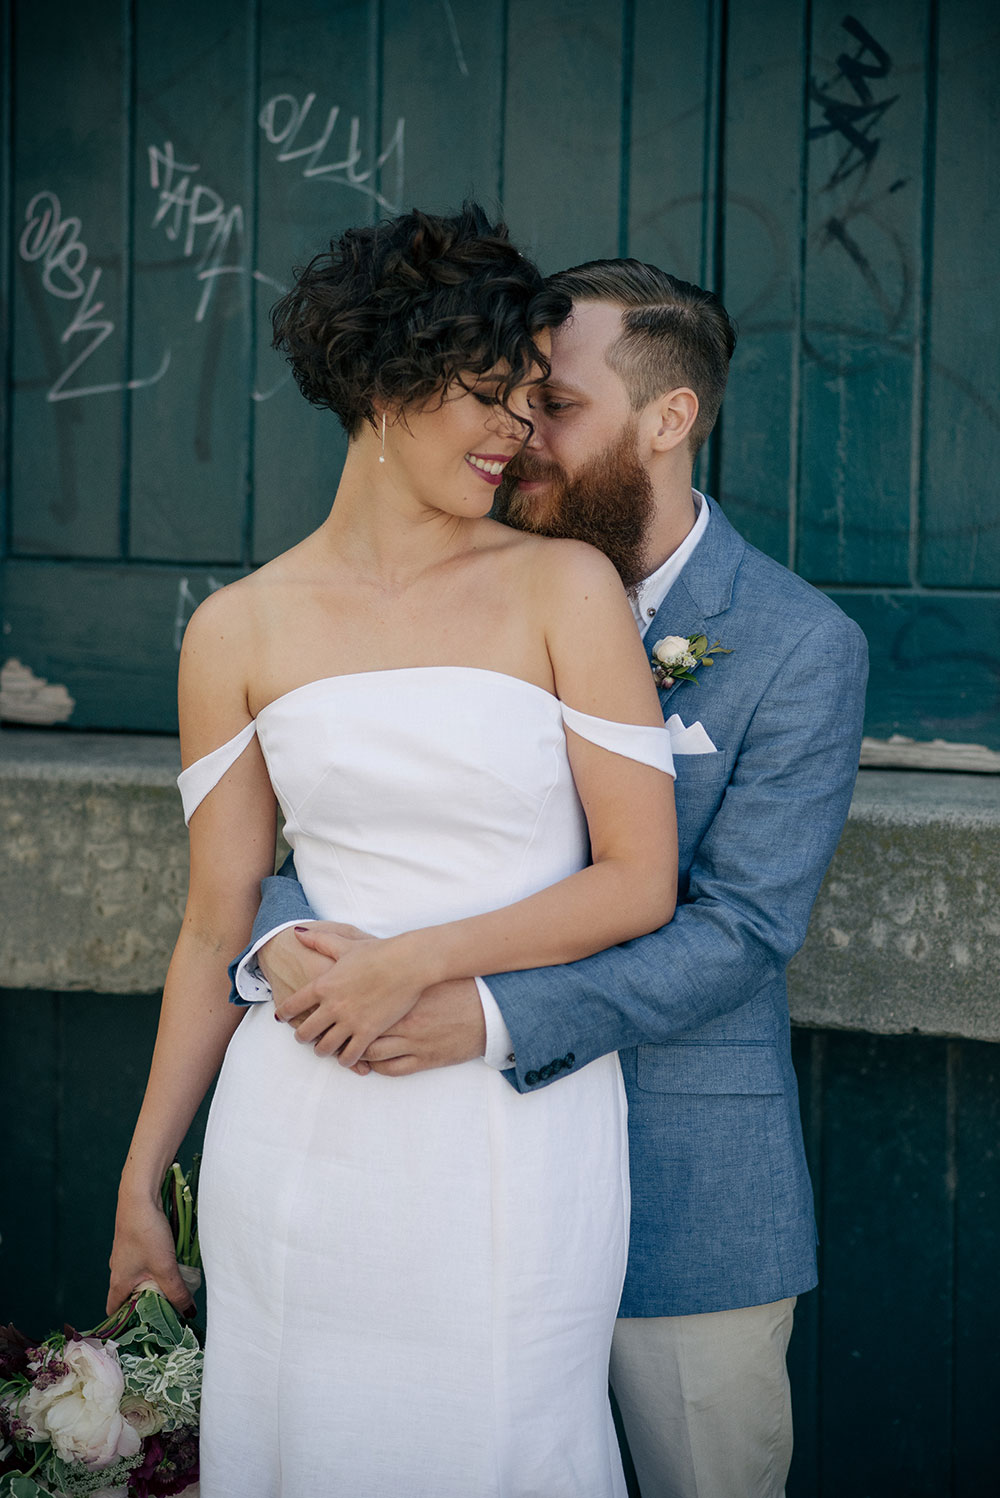 The wedding dress hub - There are a cluster of smaller wedding dress boutiques around Leederville, Mt Hawthorn and Mt Lawley that are offer a one on one service and diverse selection of gowns...READ MORE...